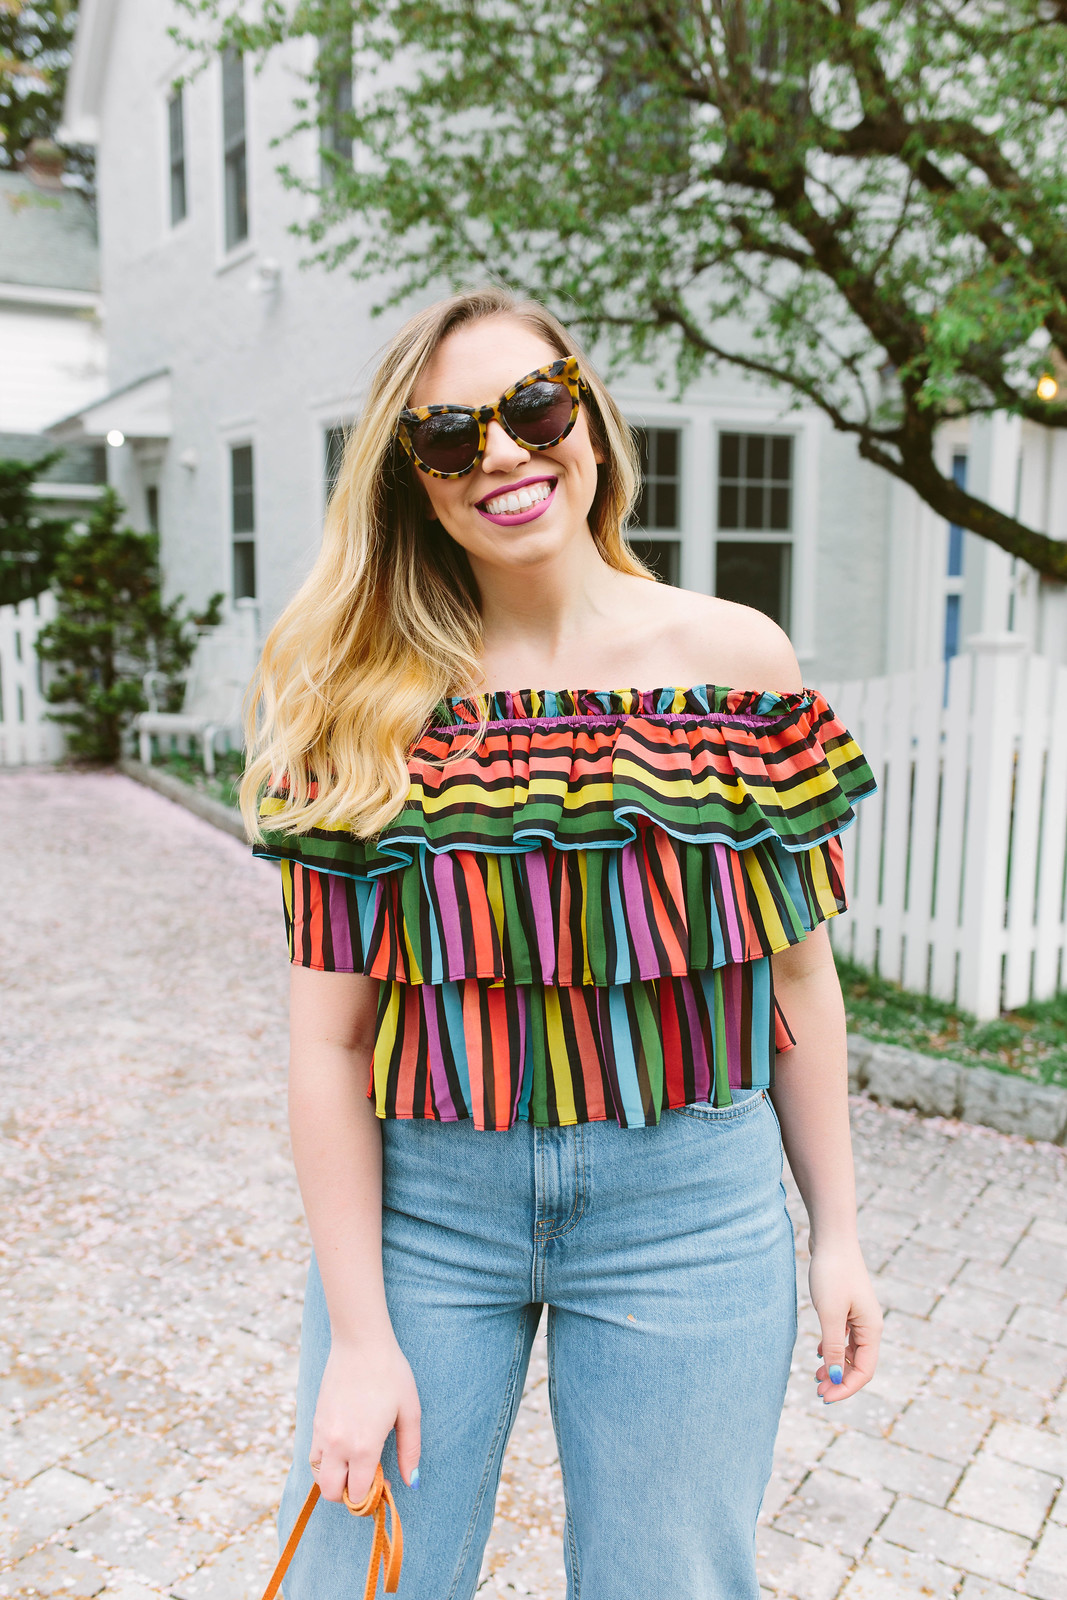 Rainbow Striped Crop Top Topshop High Waist Wide Leg Crop Jeans Spring Summer Outfit Inspiration Jackie Giardina